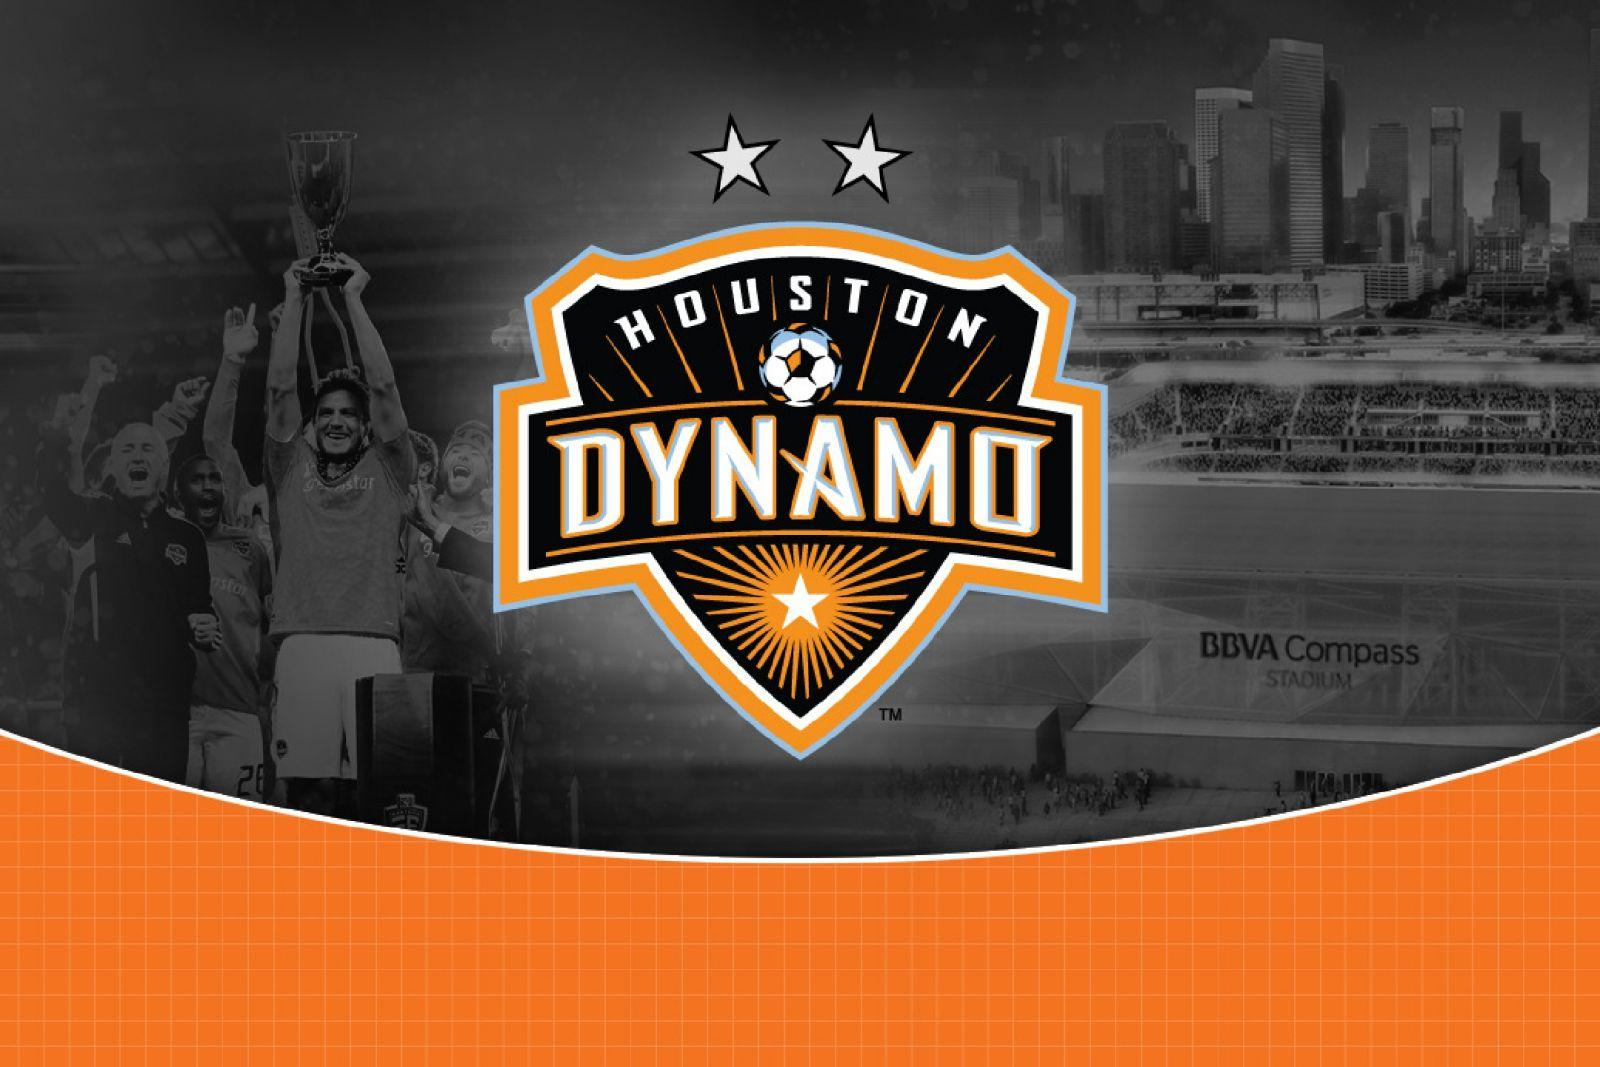 MLS Houston Dynamo Logo Team wallpapers 2018 in Soccer